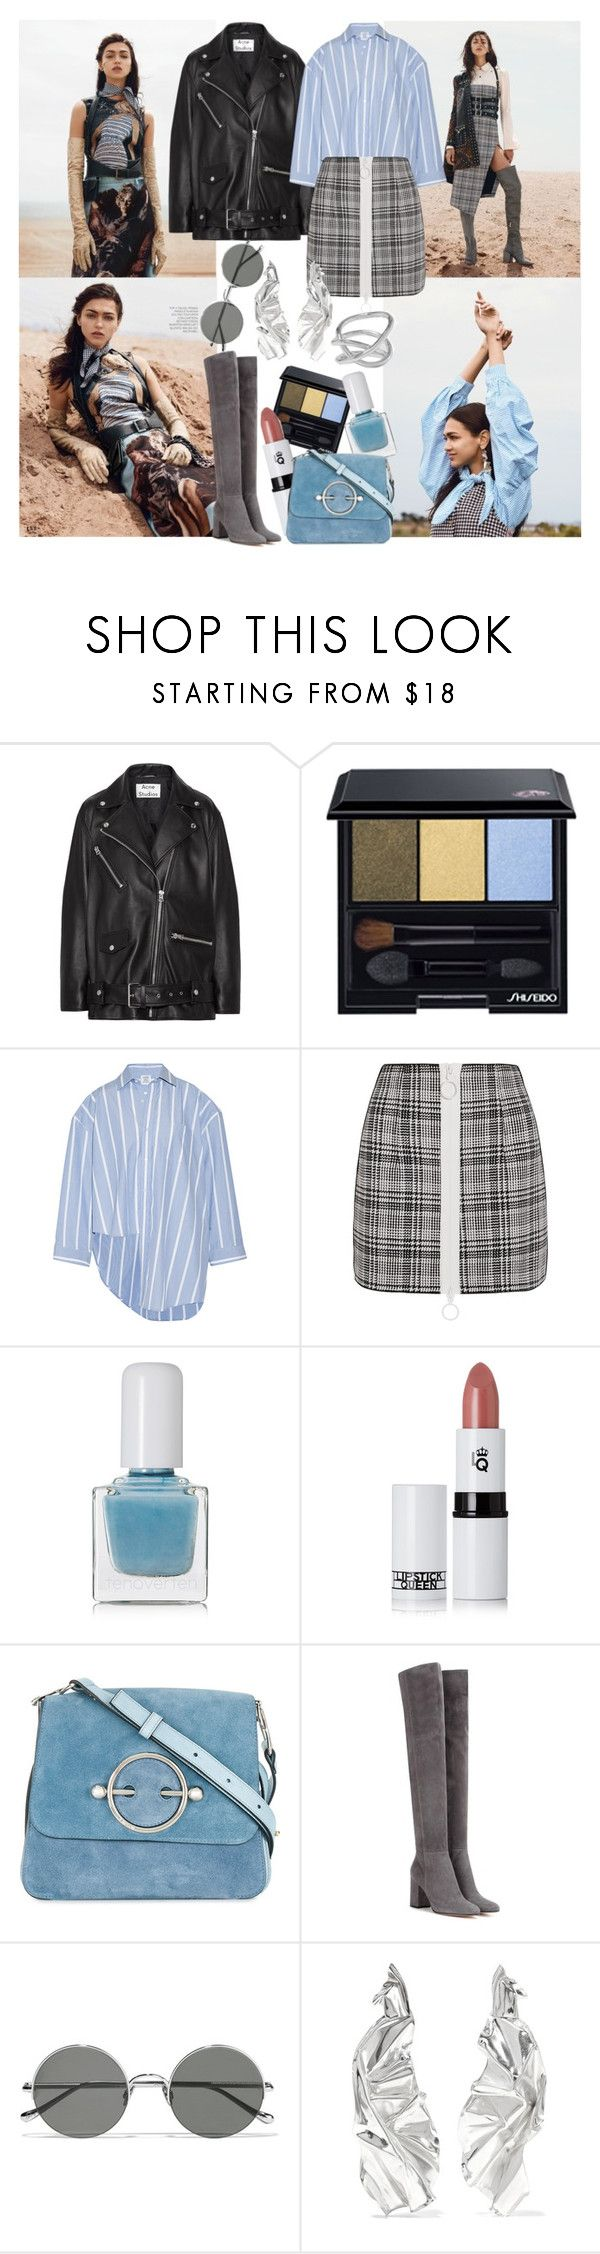 """untitled//nineteen"" by brownish ❤ liked on Polyvore featuring Acne Studios, Shiseido, Vetements, Off-White, tenoverten, Lipstick Queen, J.W. Anderson, Gianvito Rossi, Sunday Somewhere and WWAKE"